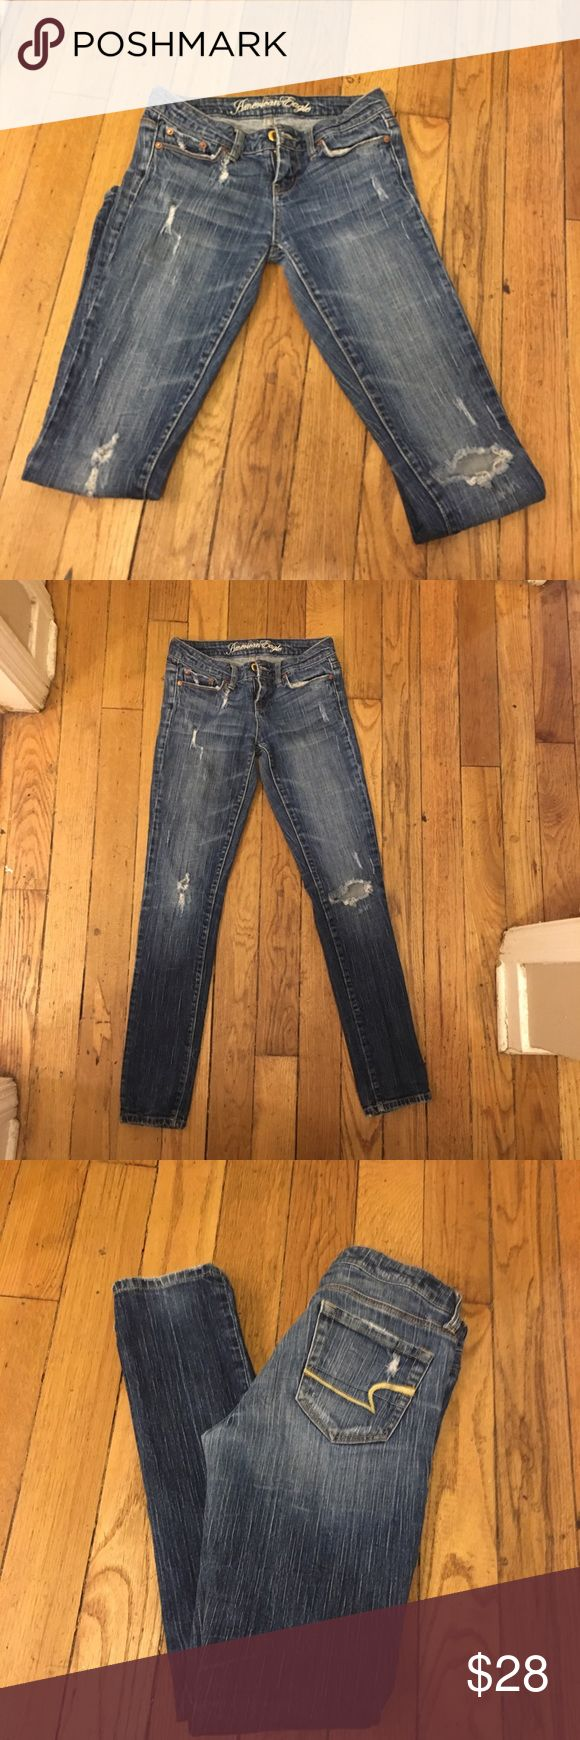 ‼️ AMERICAN EAGLE WOMENS JEAN ‼️ AMERICAN EAGLE women's jeans ‼️ Size 2 ‼️ Skinny cut ‼️ In great condition ‼️ American Eagle Outfitters Jeans